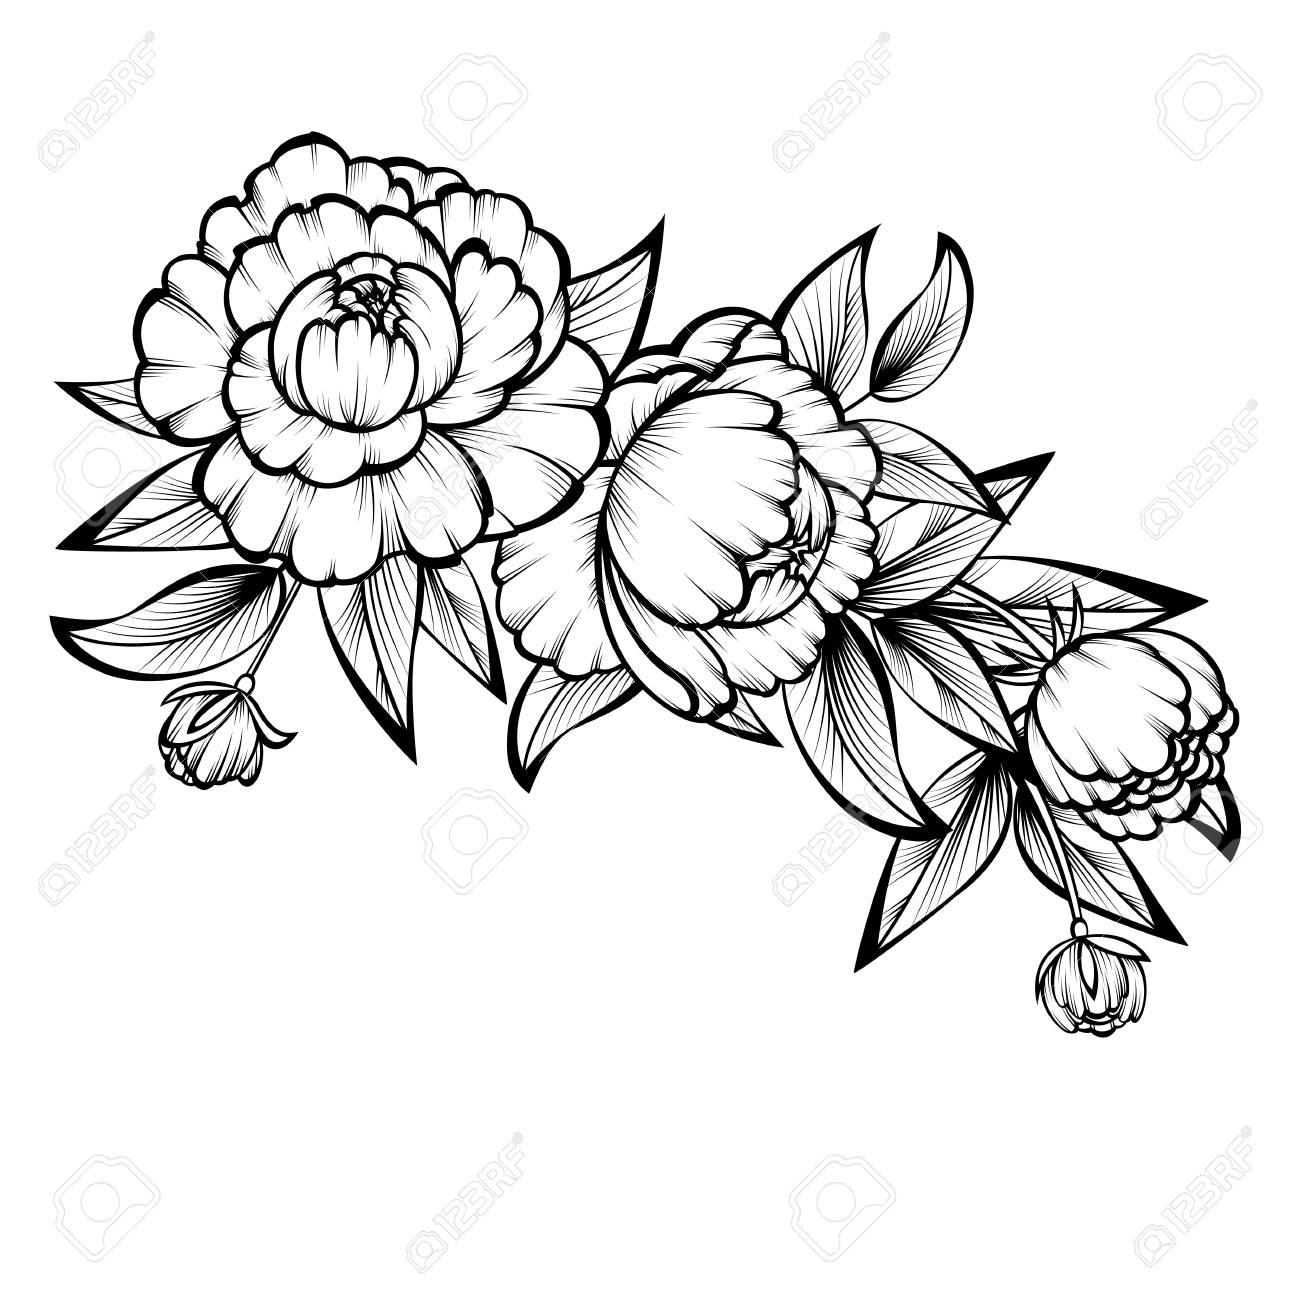 Branch of roses on a white background; - 120319400